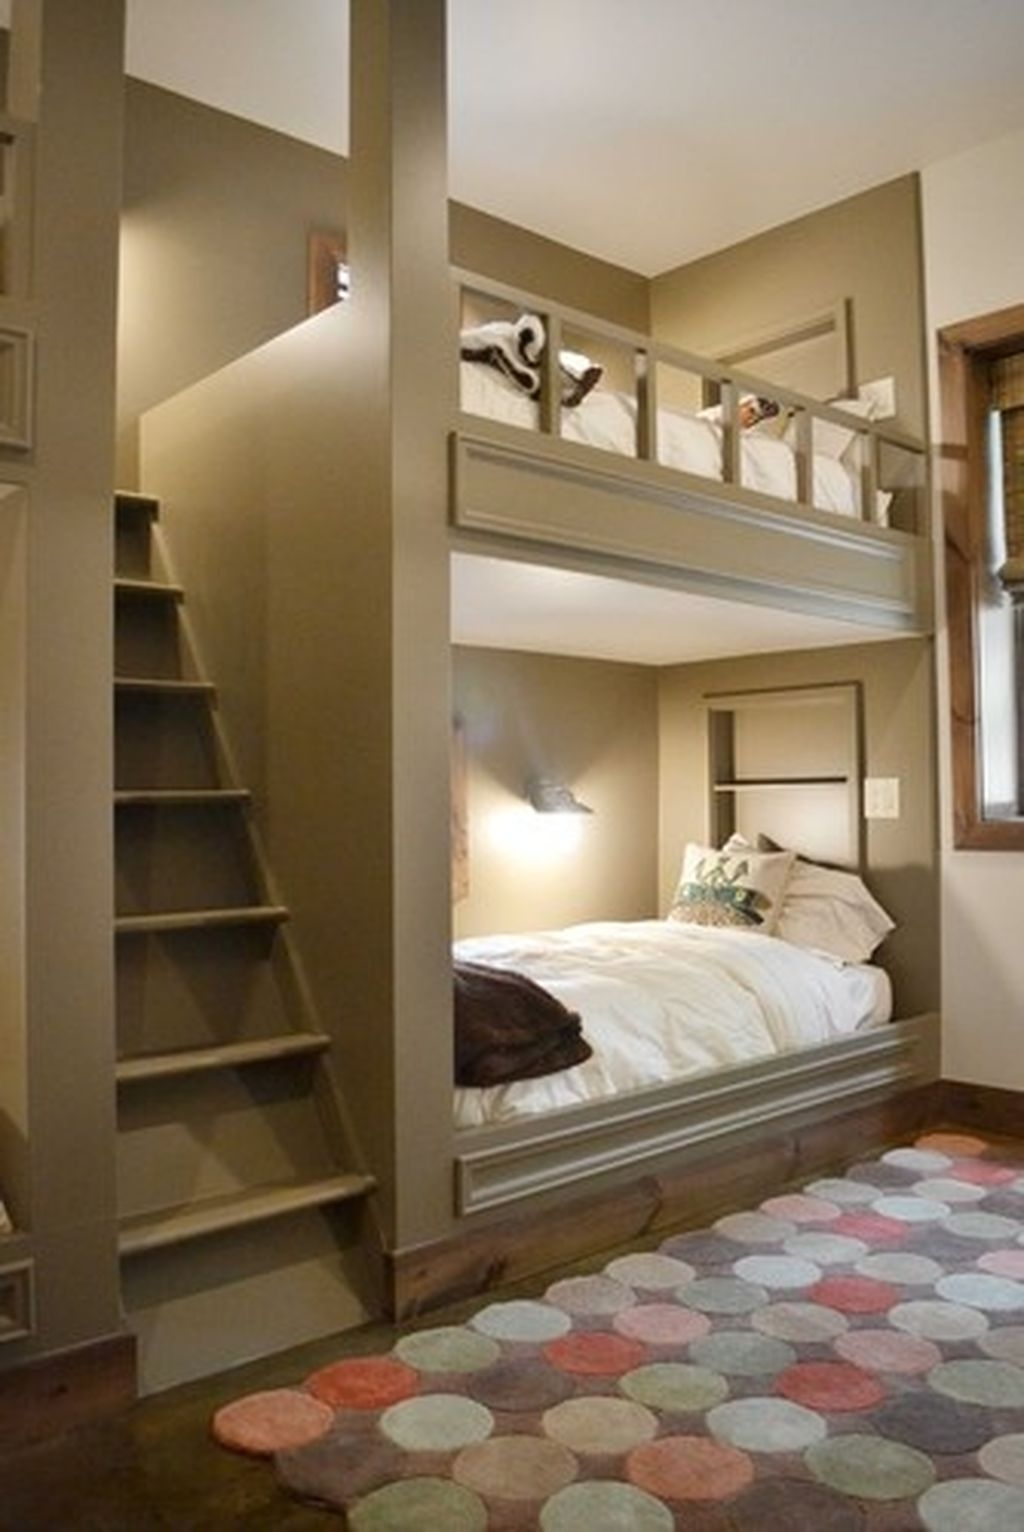 Cool And Functional Built In Bunk Beds Ideas For Kids14